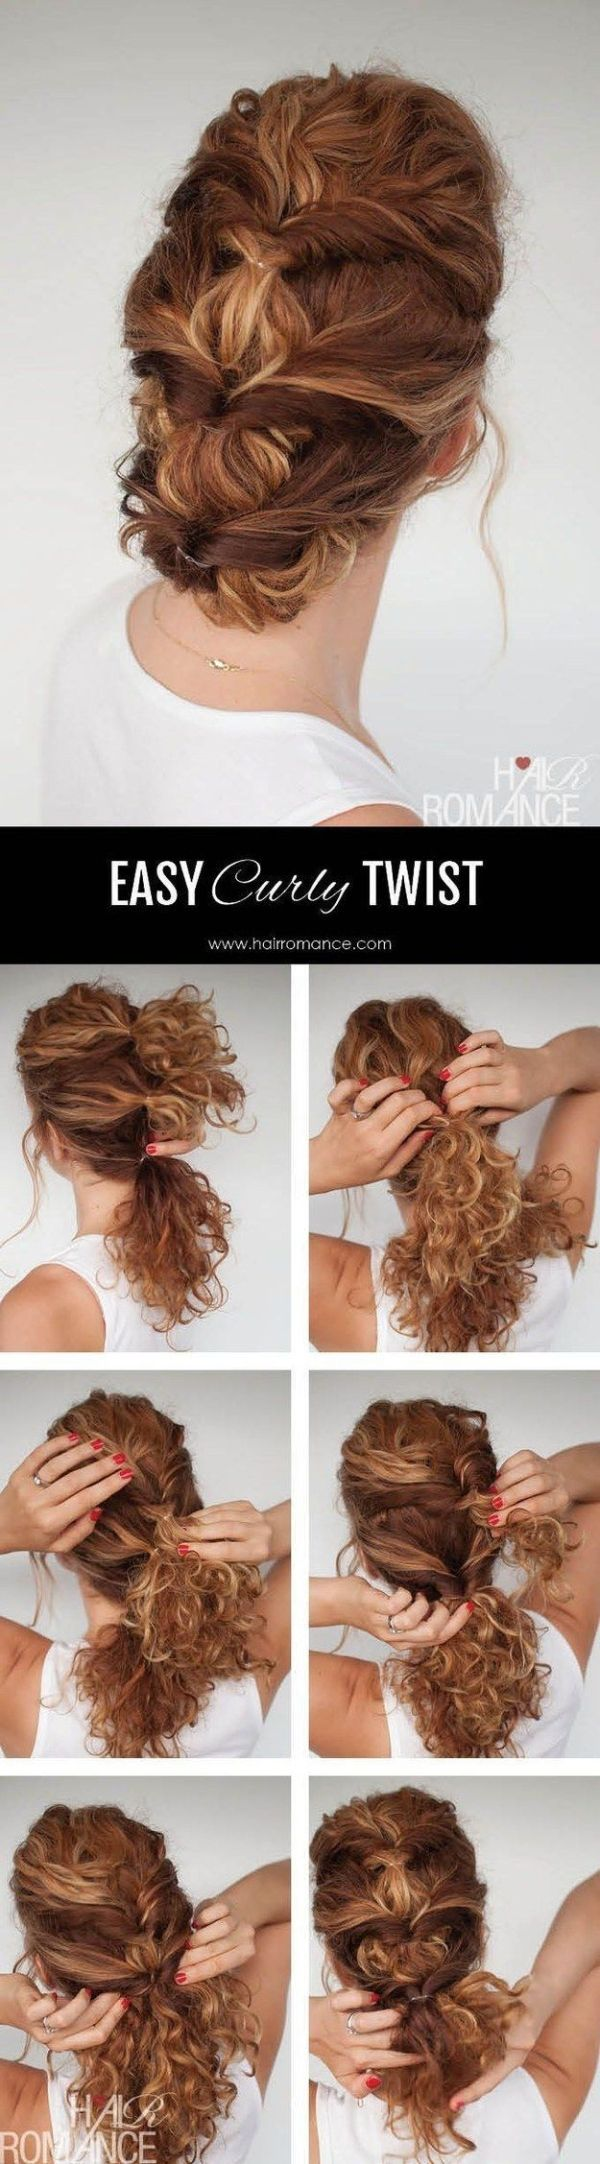 238 best images about hair on pinterest | oval faces, updo and